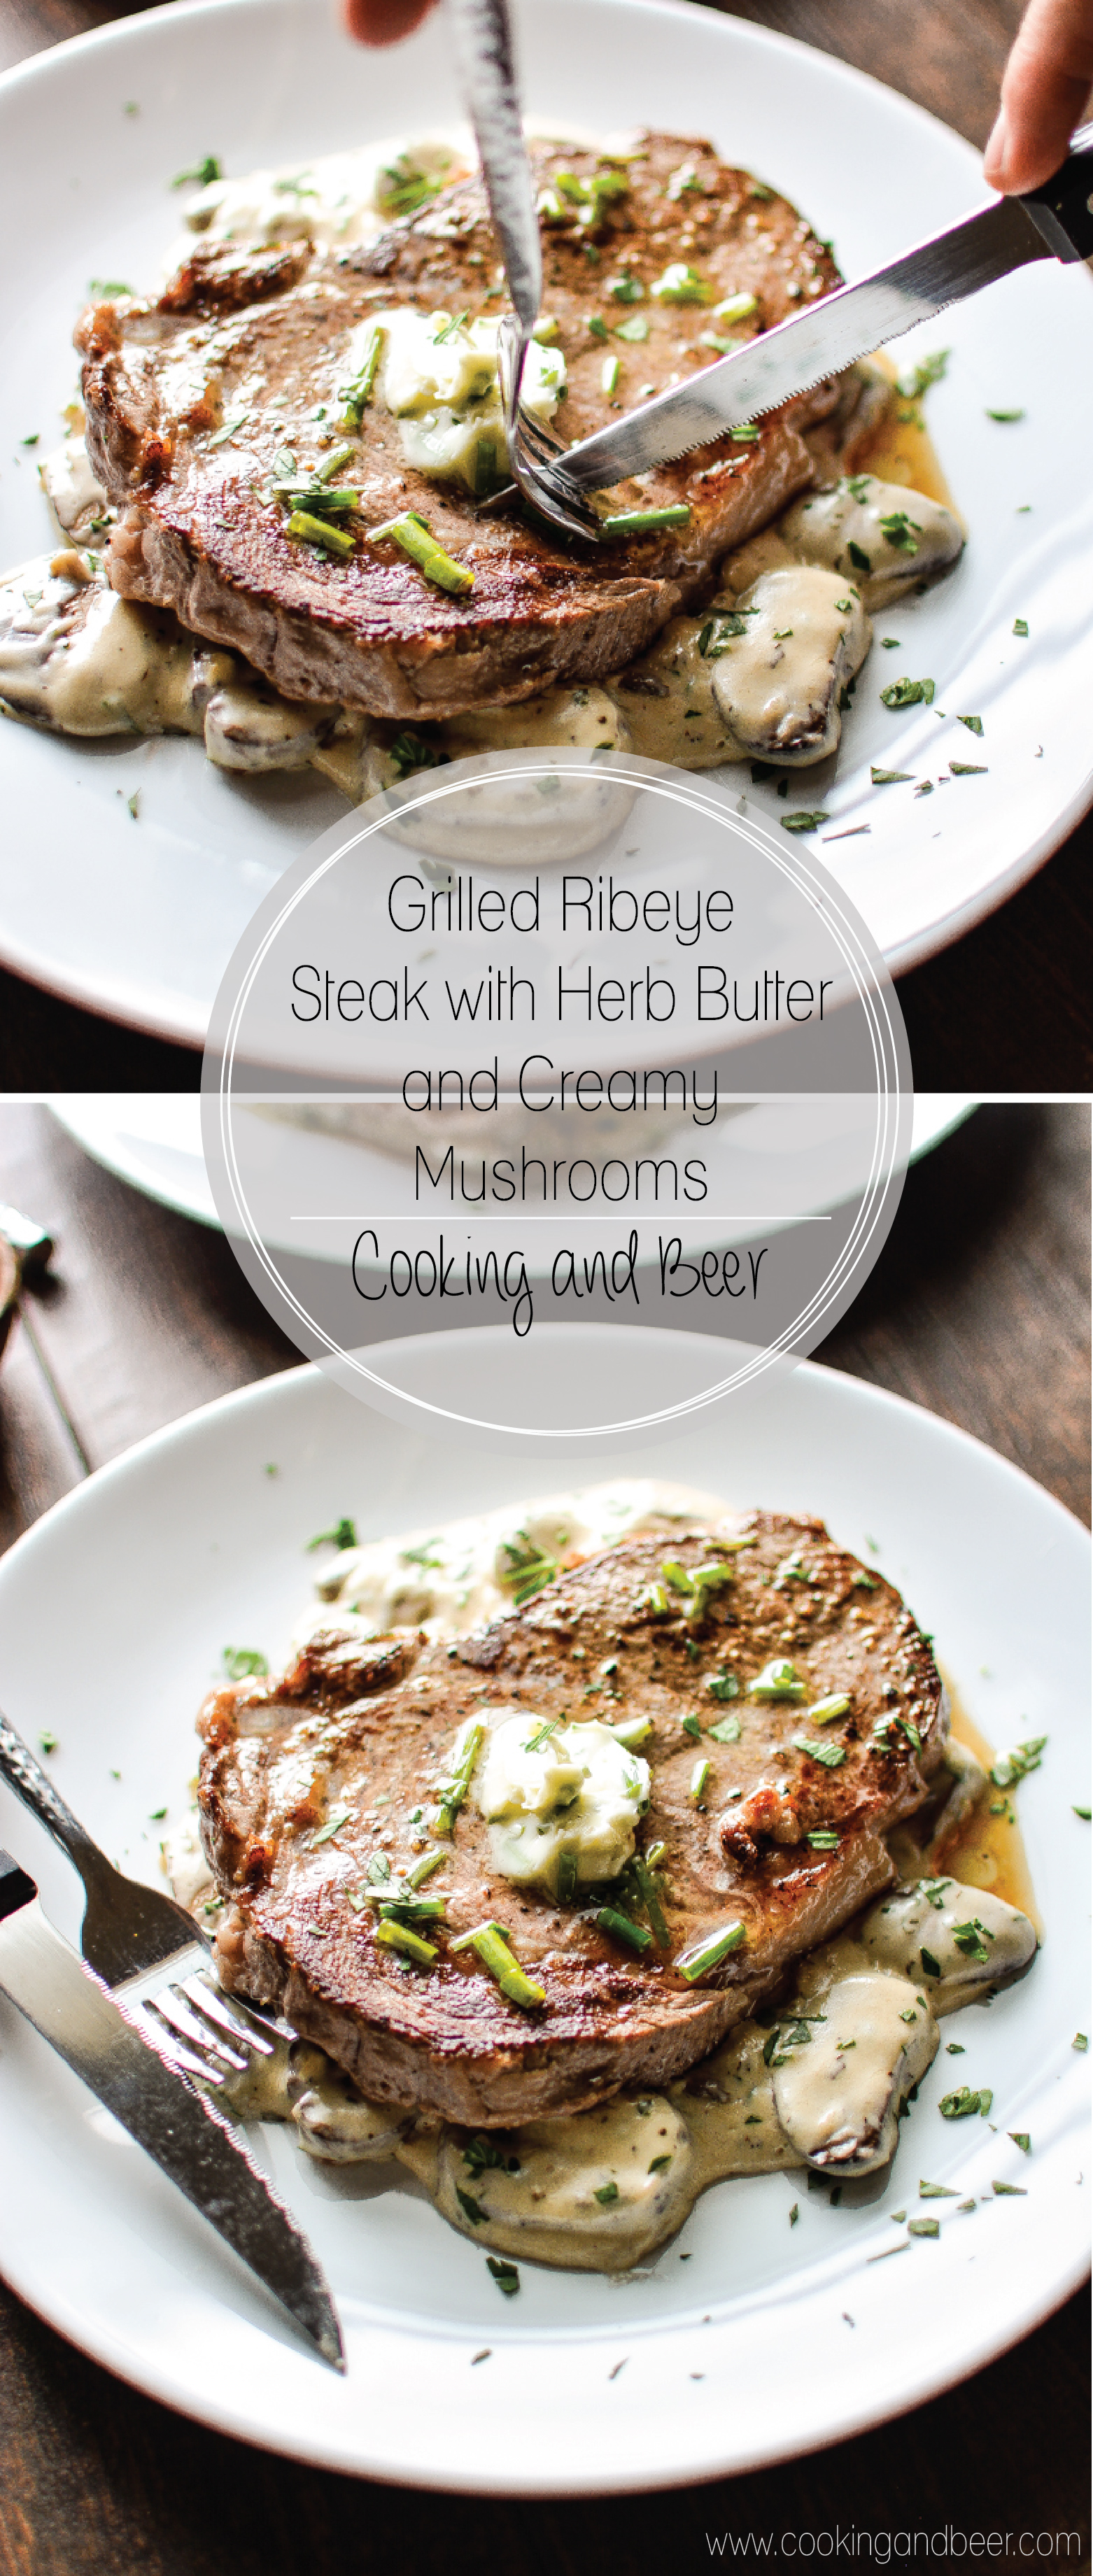 Grilled Ribeye Steak with Herb Butter and Creamy Mushrooms is a hearty, comforting and delicious weekend grilling recipe! | www.cookingandbeer.com